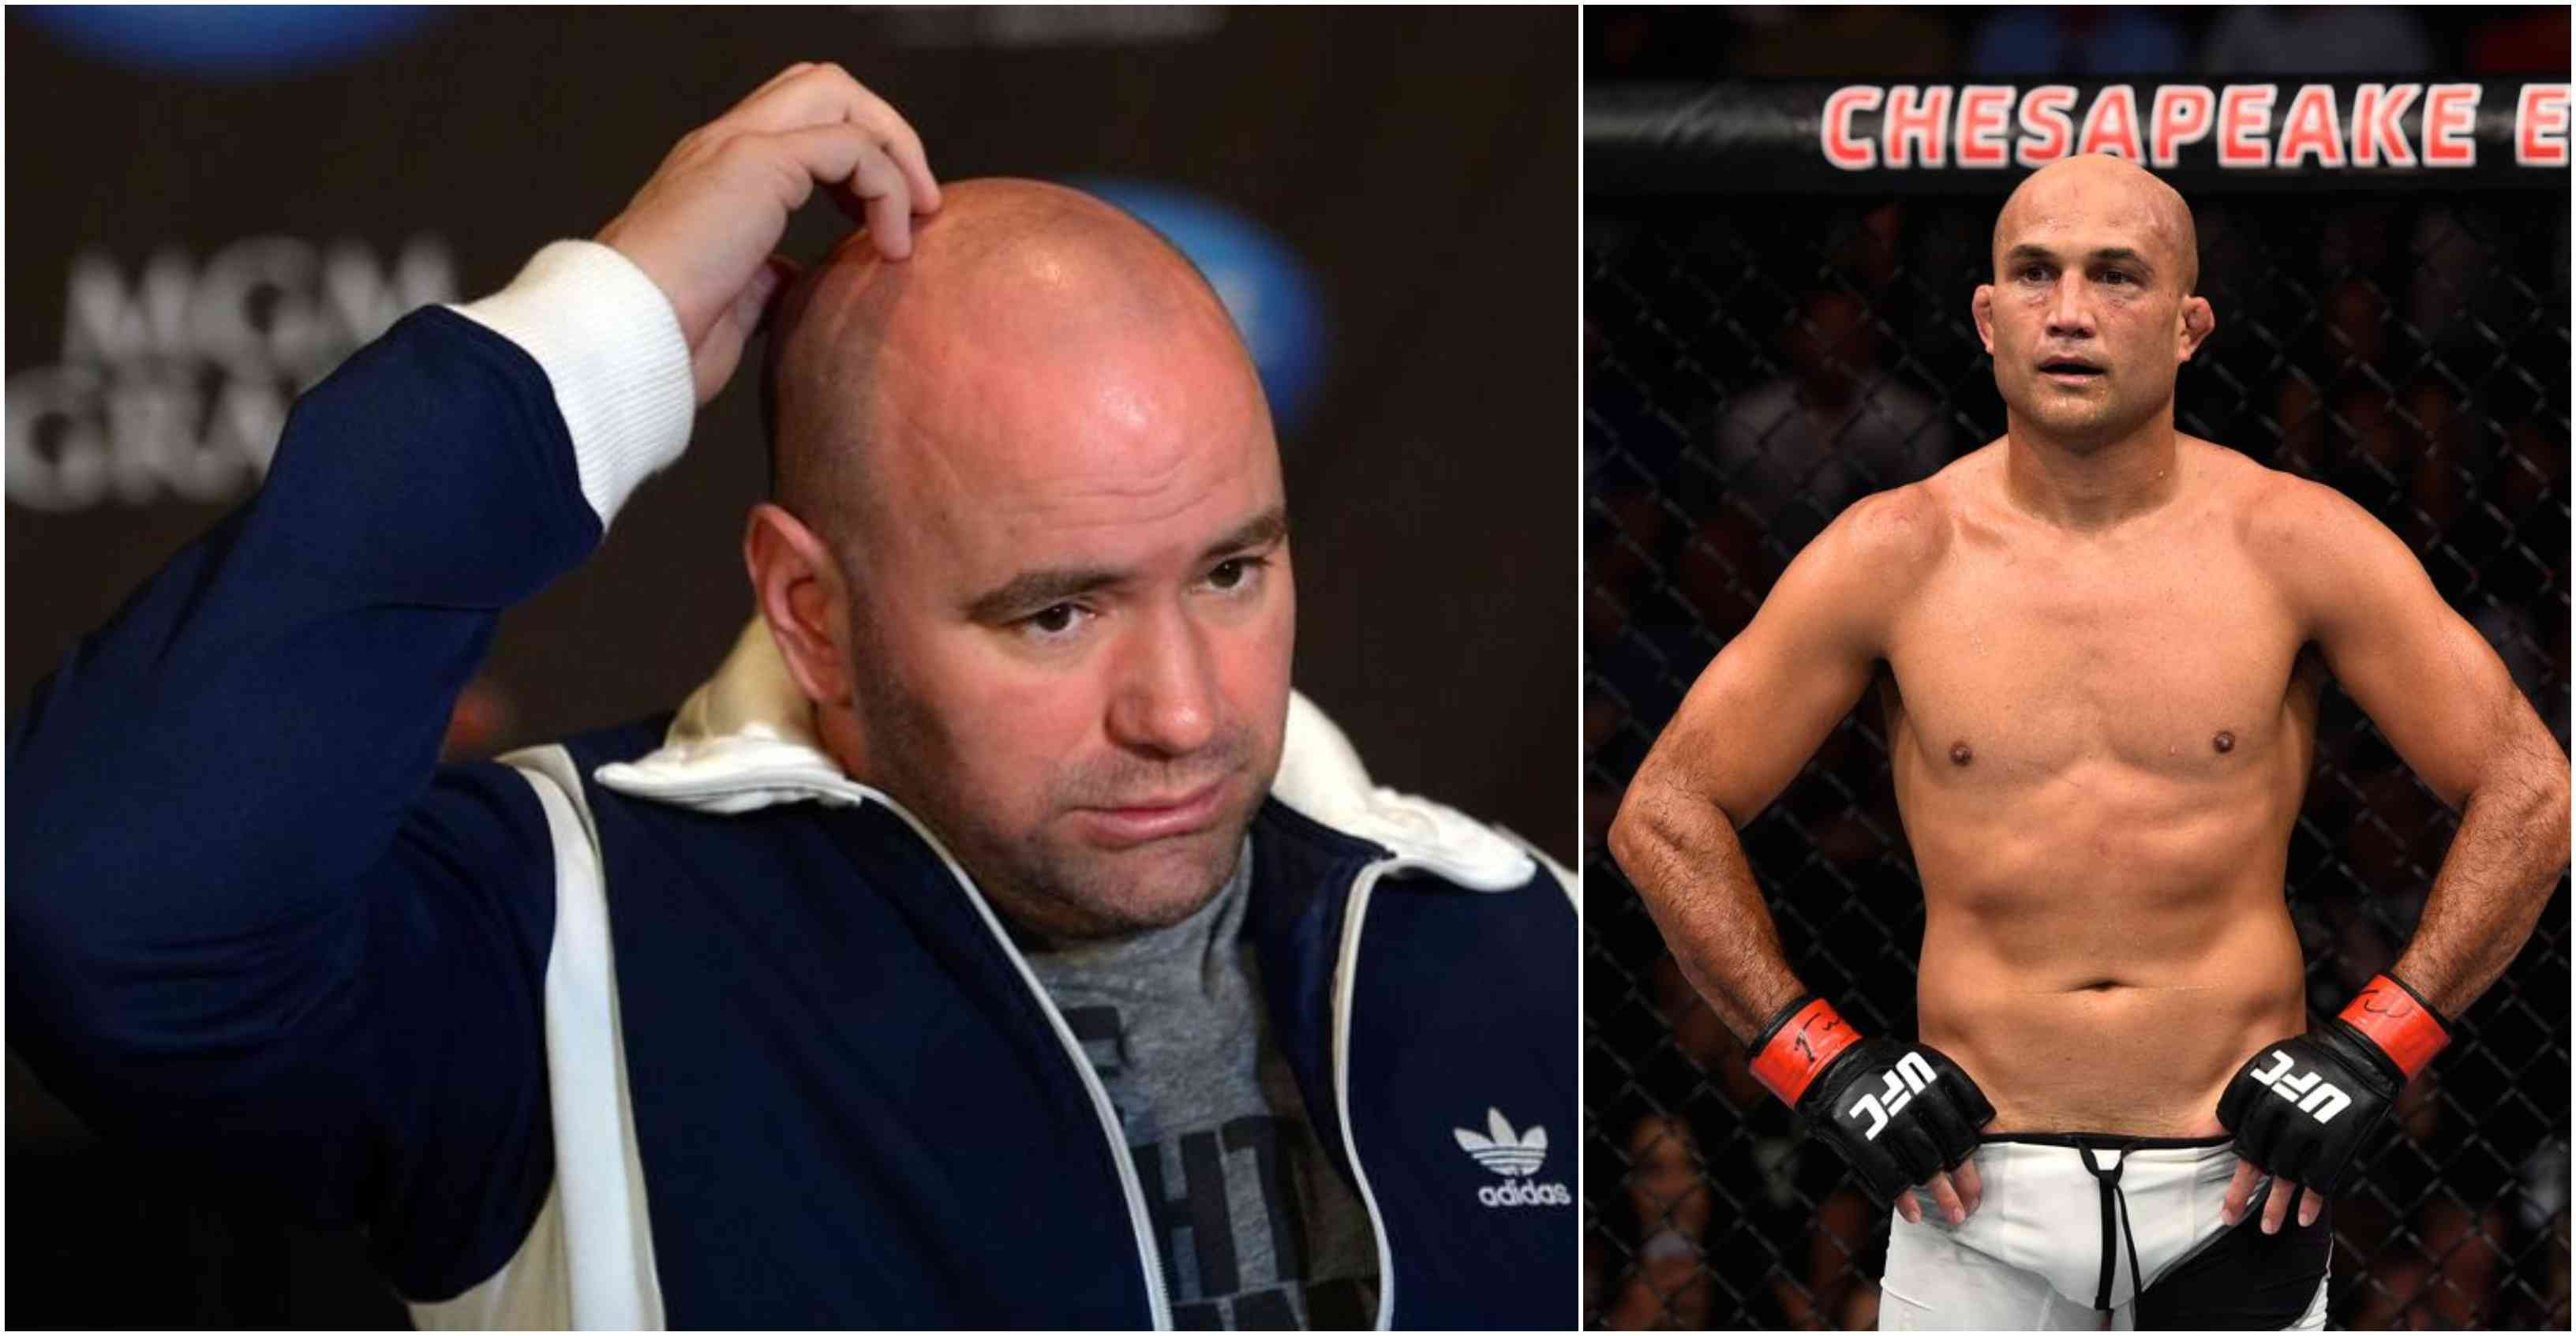 Dana White puts an end to BJ Penn's UFC career - White